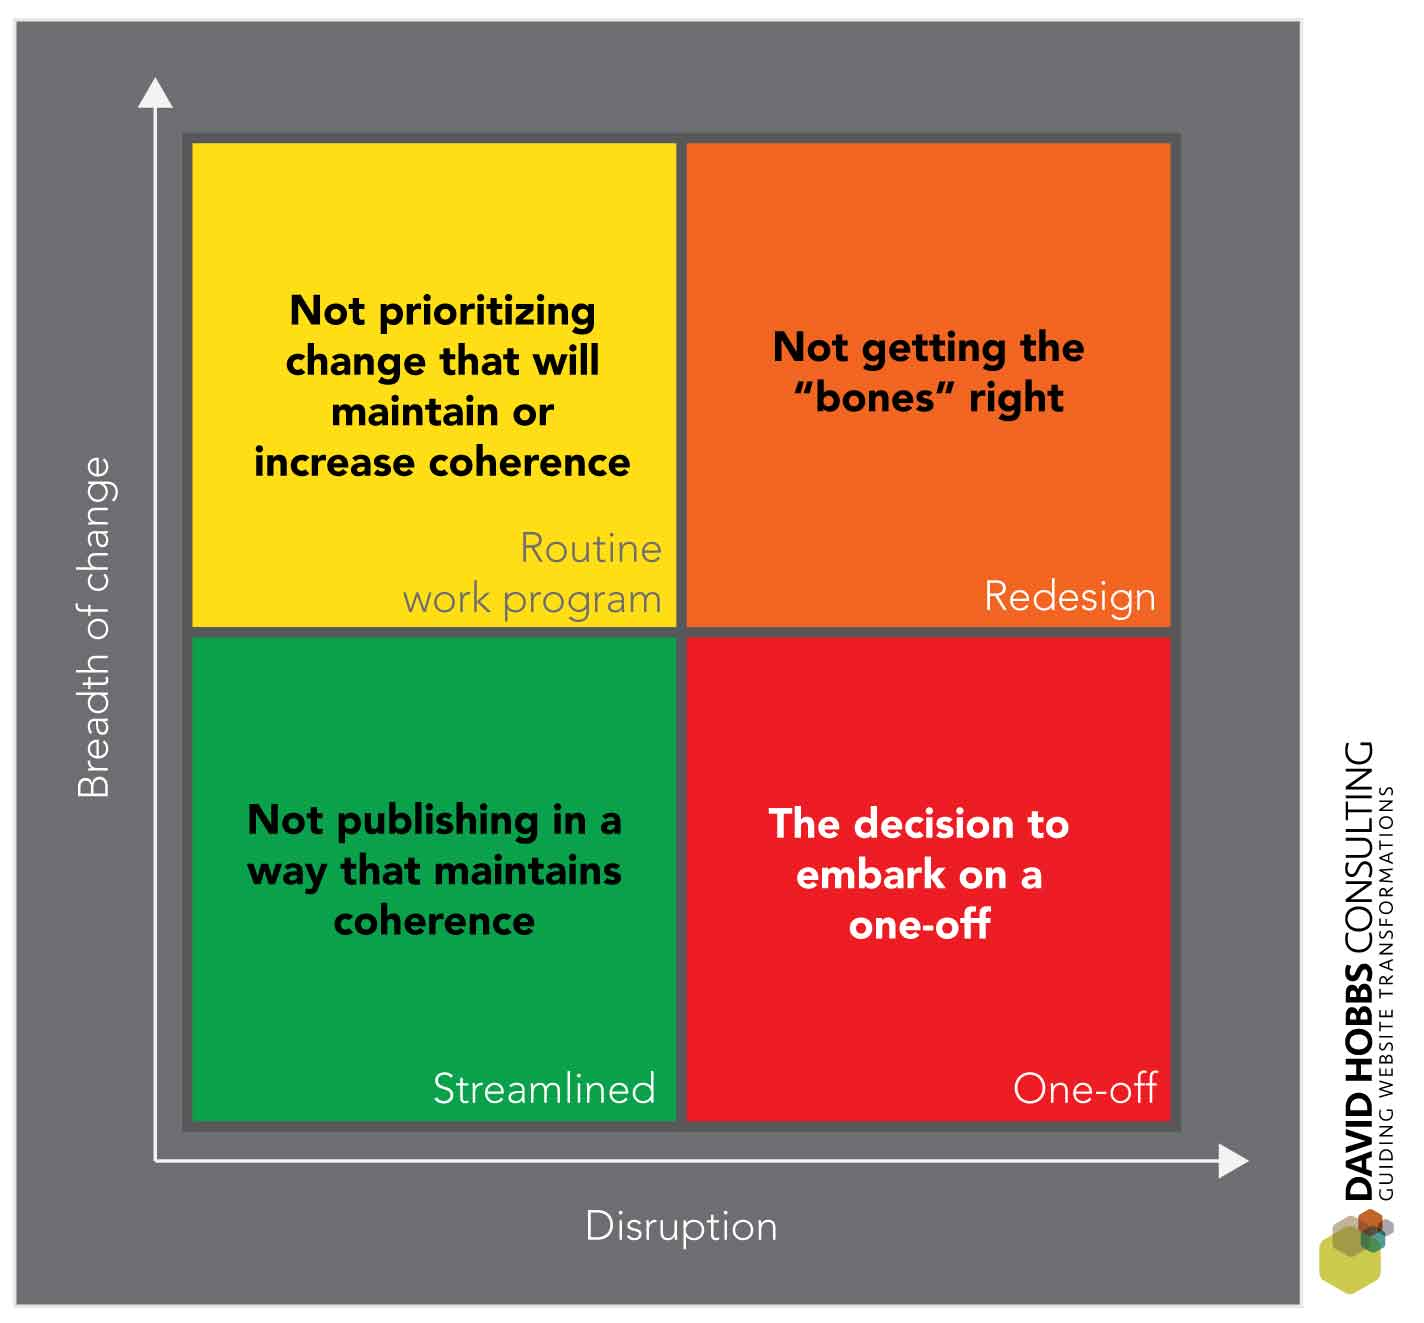 We insert problems that hasten the need for the next redesign in all quadrants